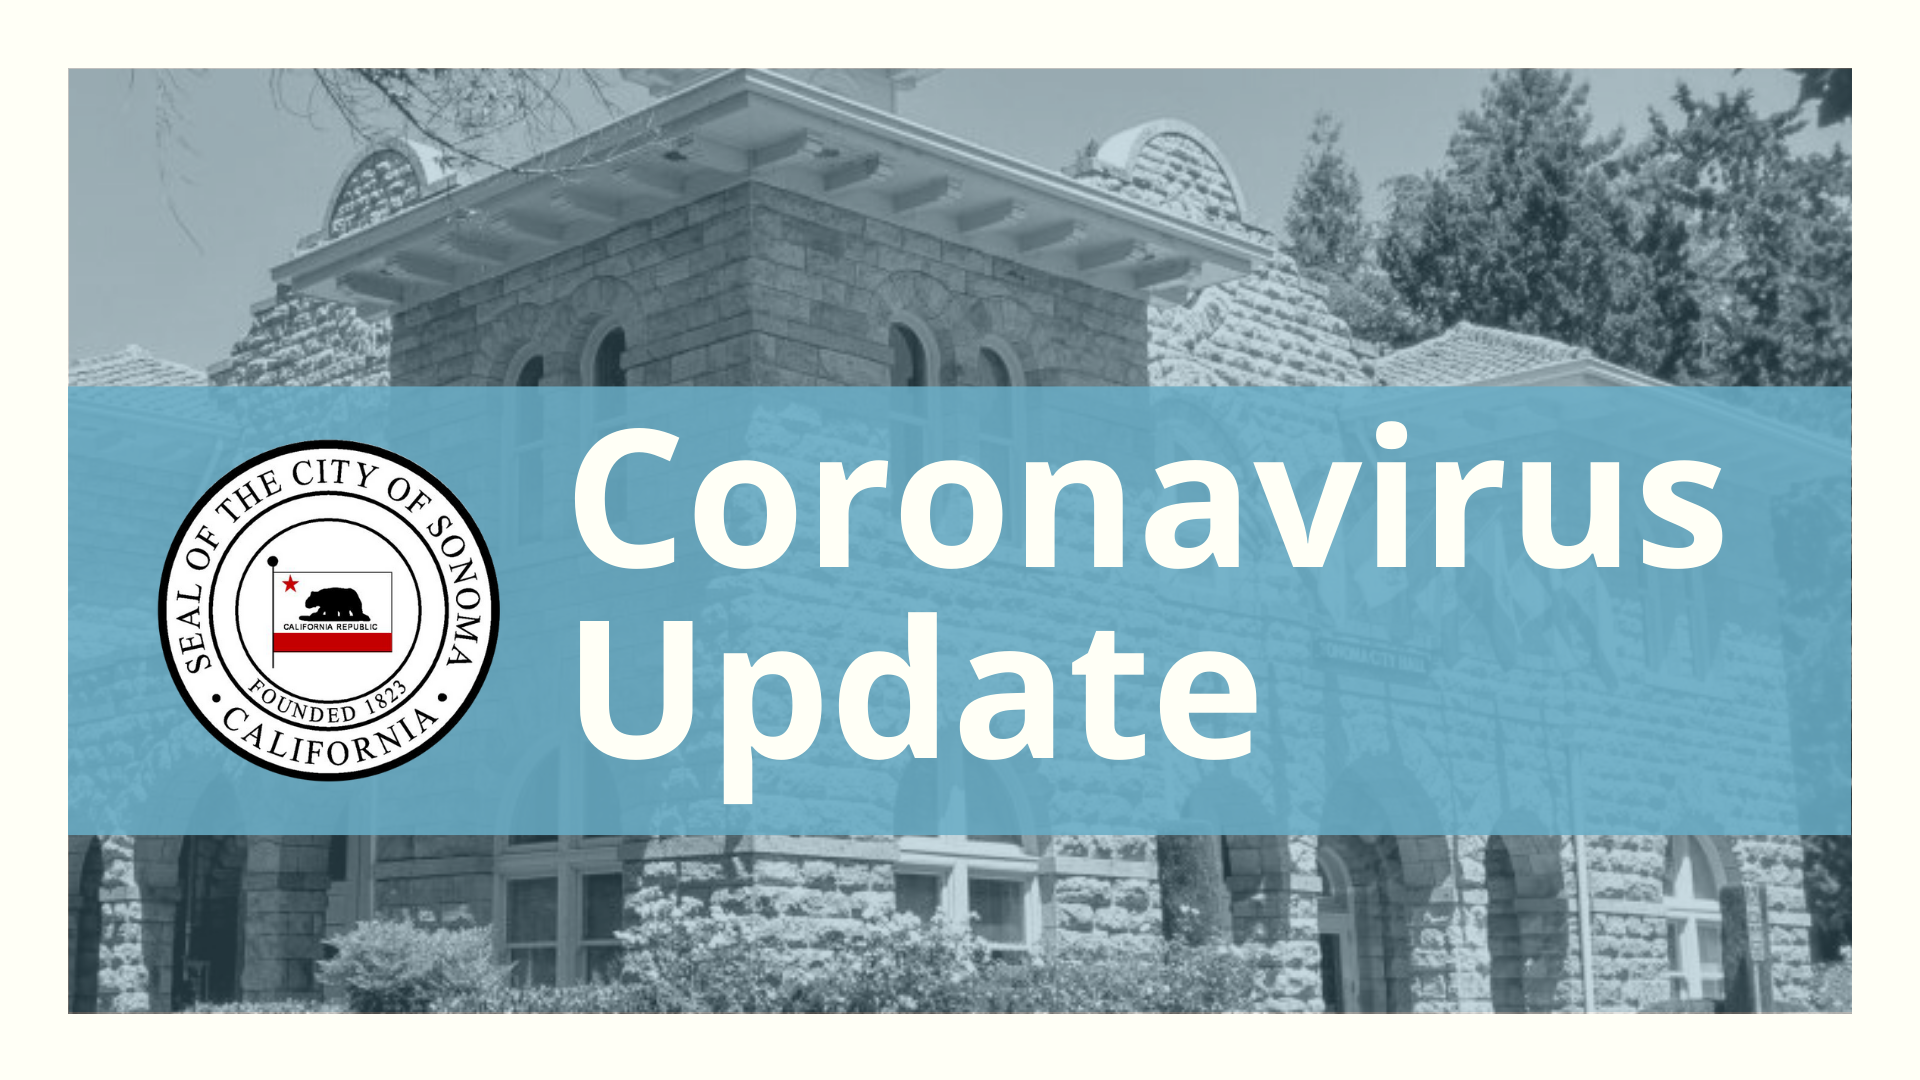 City of Sonoma Coronavirus Update